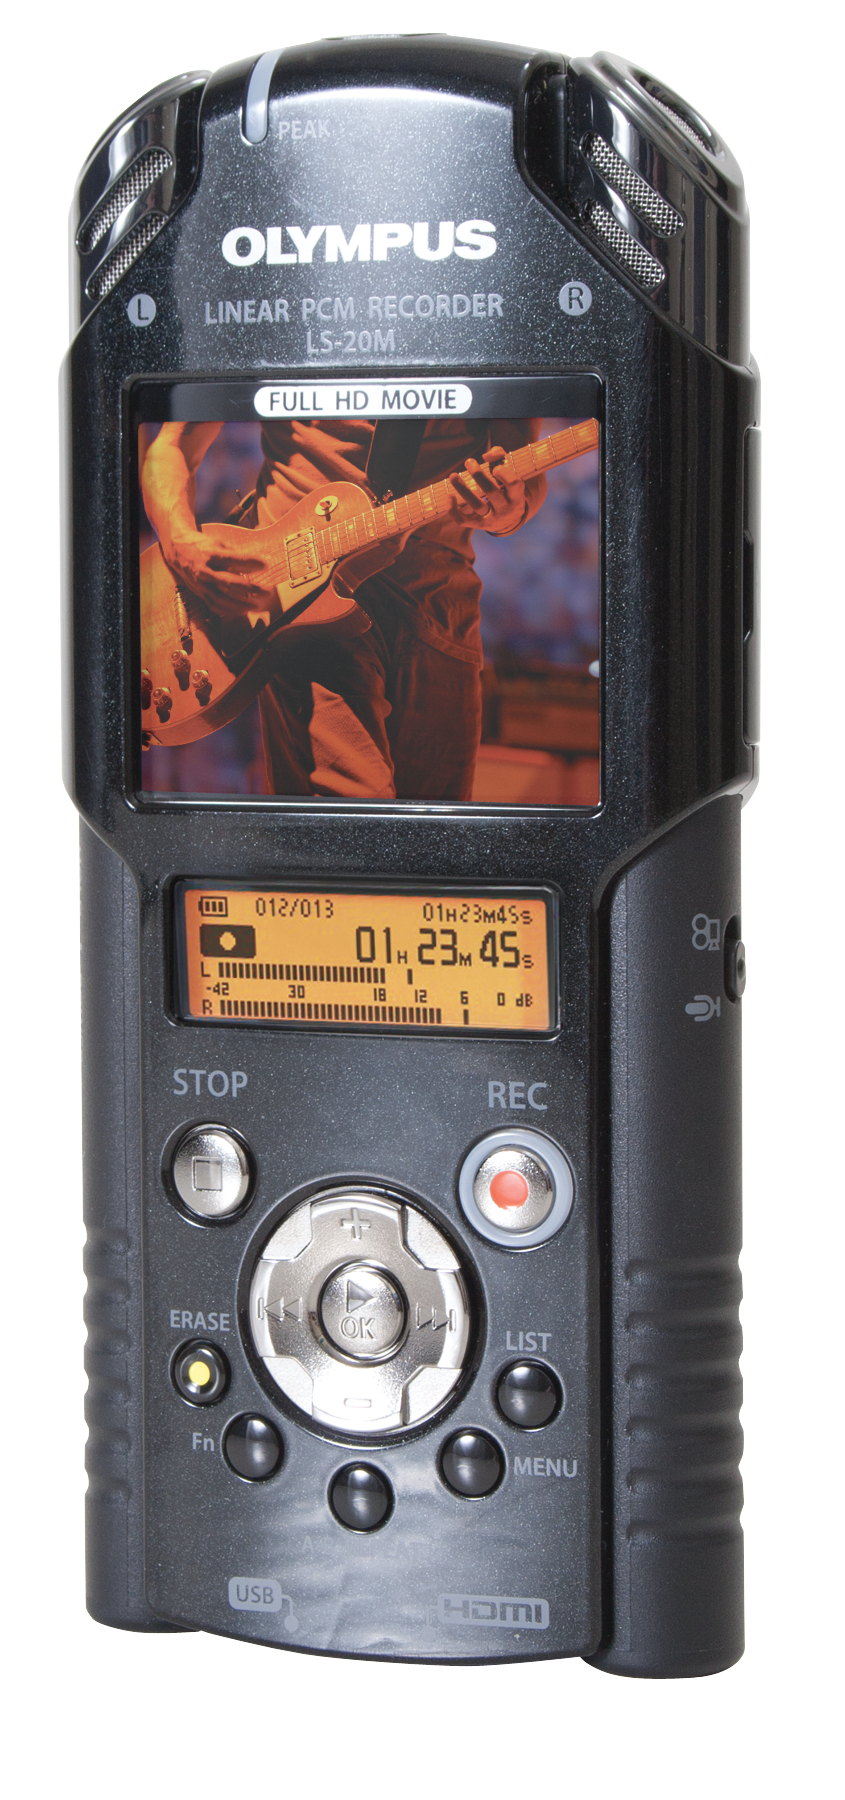 Photo of the Olympus LS-20M Audio/Video Recorder